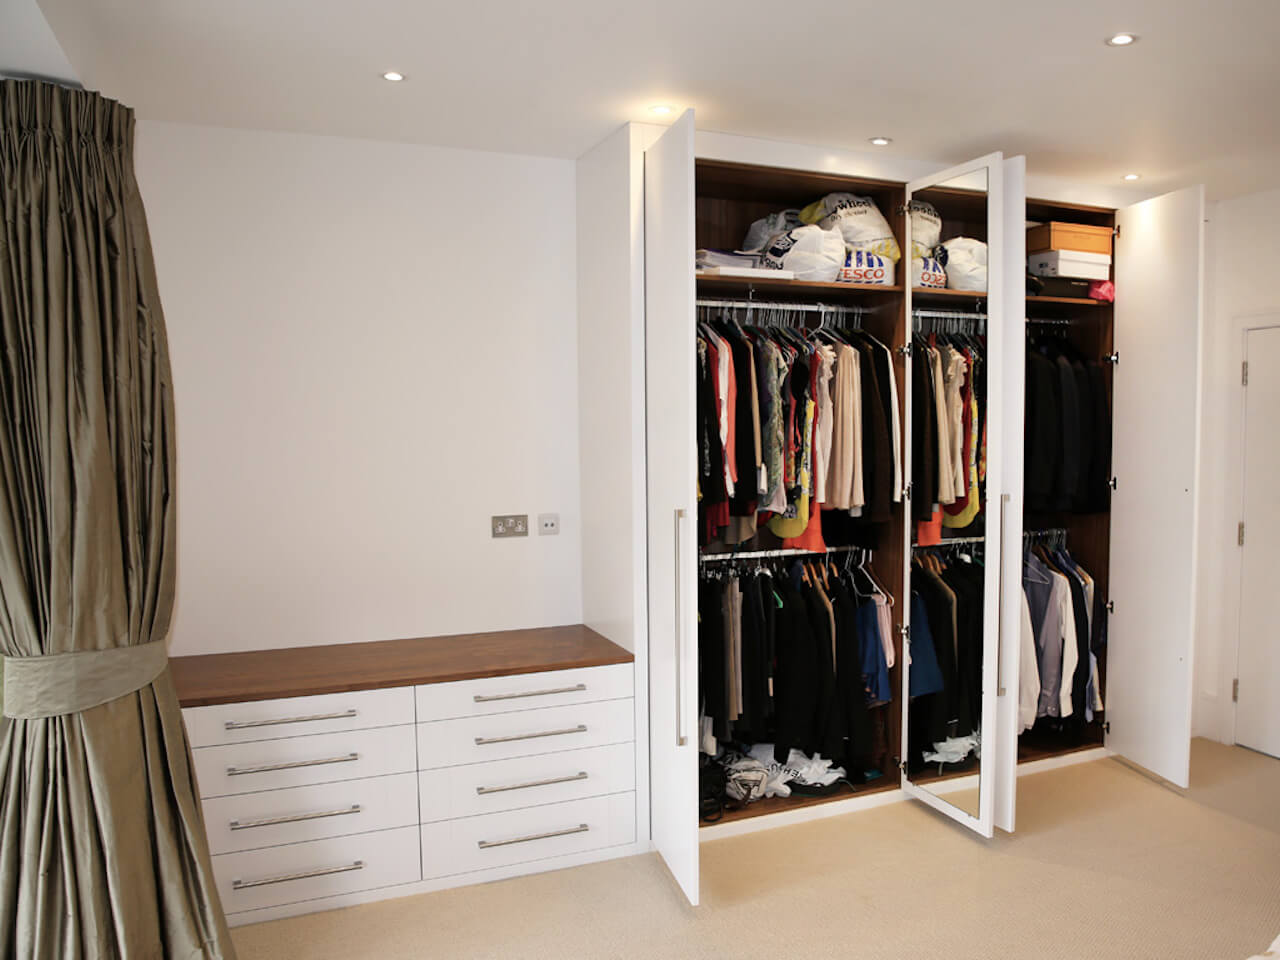 3-bespoke-built-in-fitted-wardrobe-interior-chest-drawers-bedroom-furniture.jpg